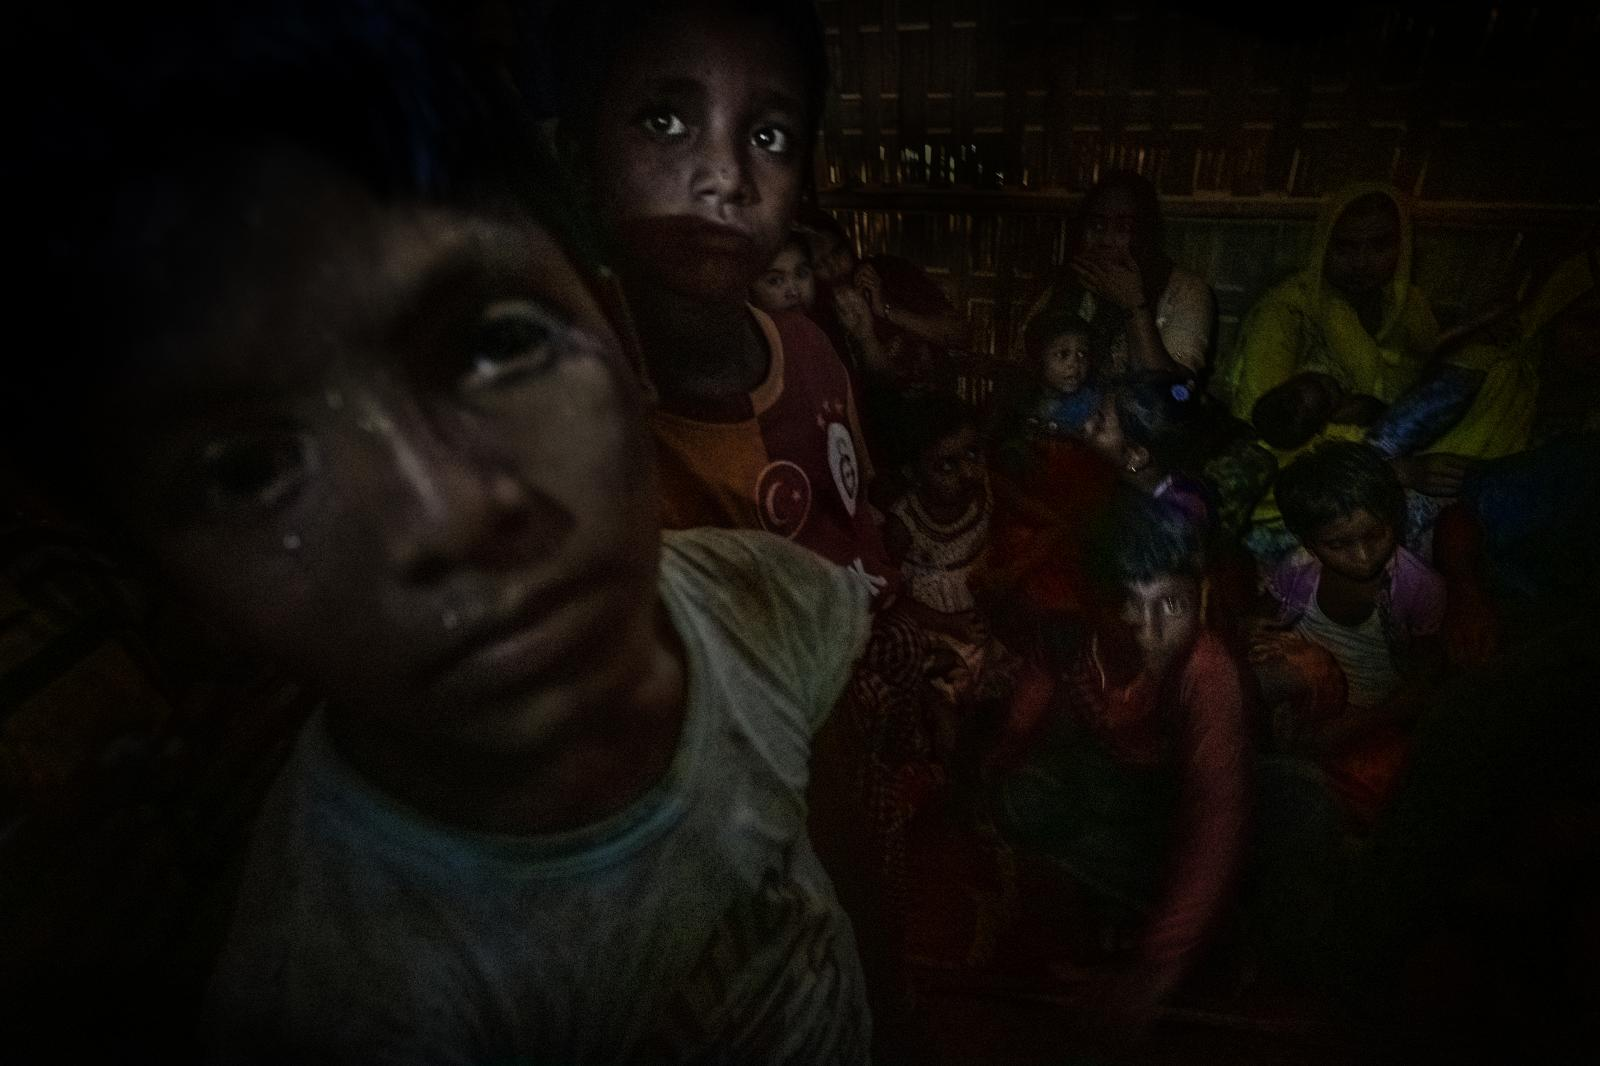 Children are always the most vulnerable in war, where decisions always conditioned by their parents shapes a future without any options (Bangladesh).